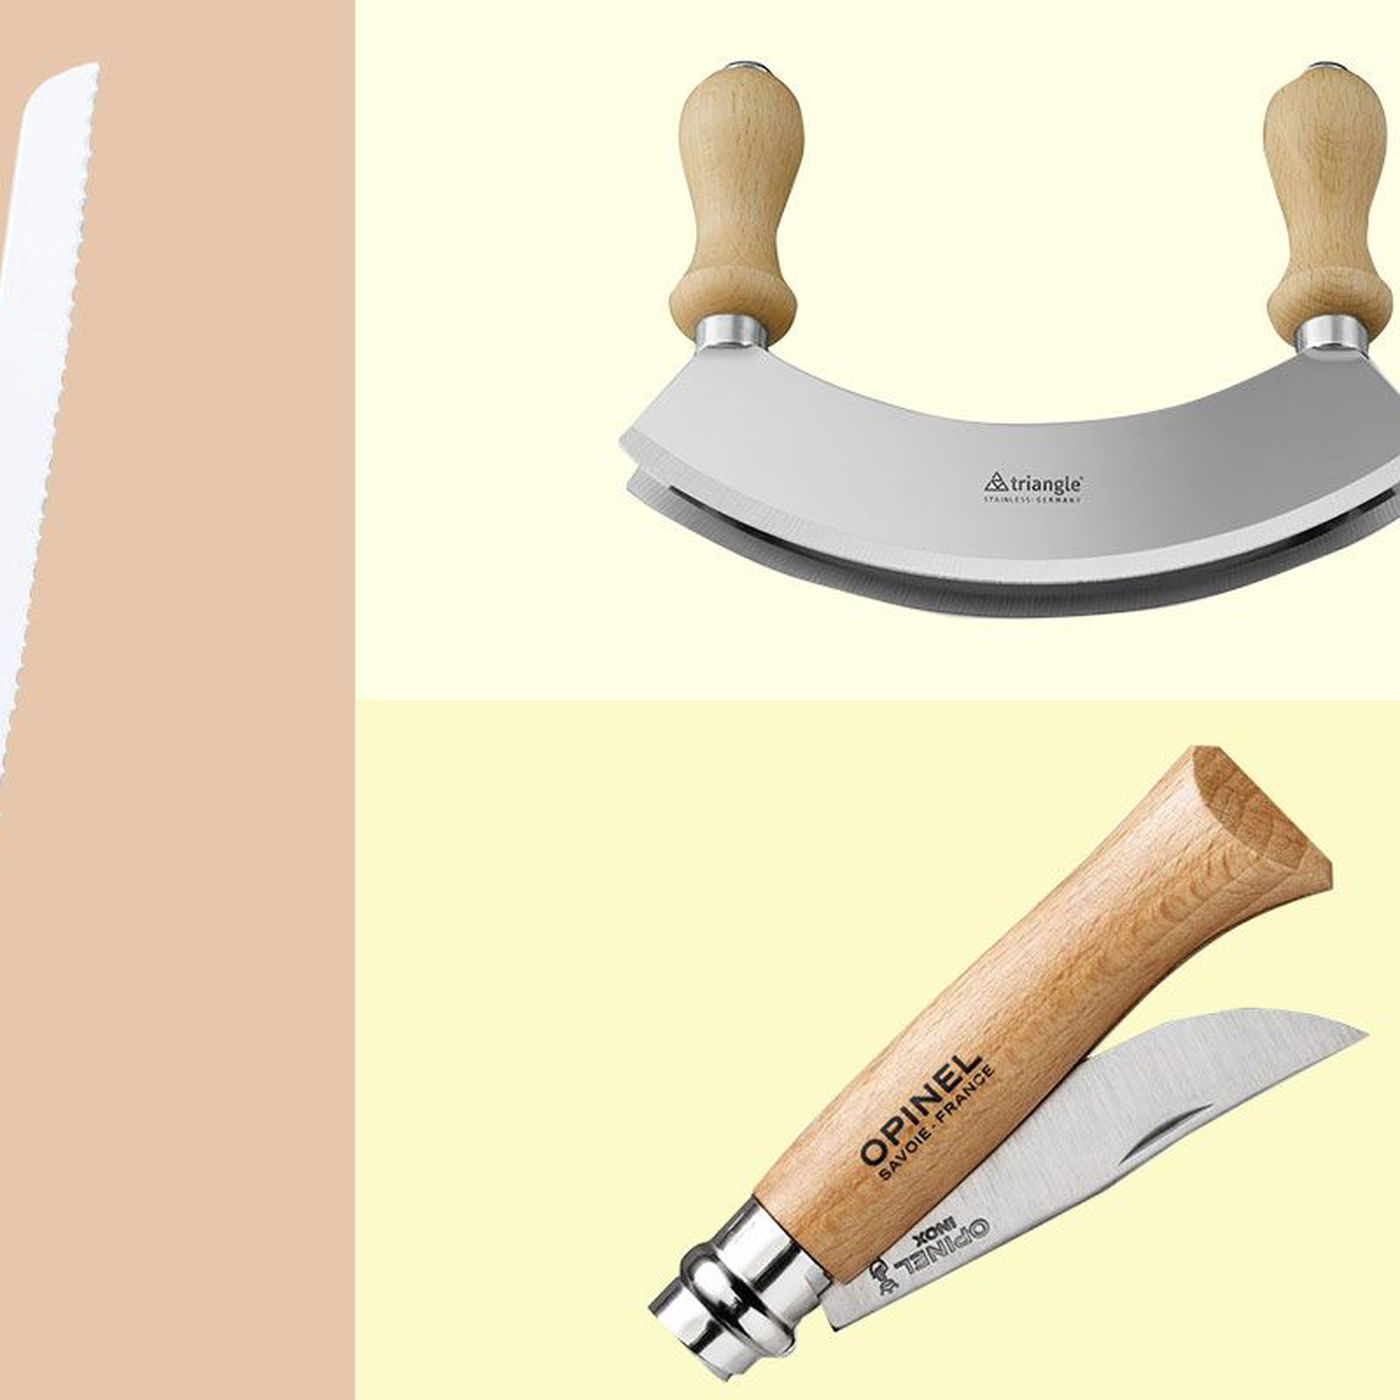 The Best Home Kitchen Knives According To A Fourth Generation Butcher Eater